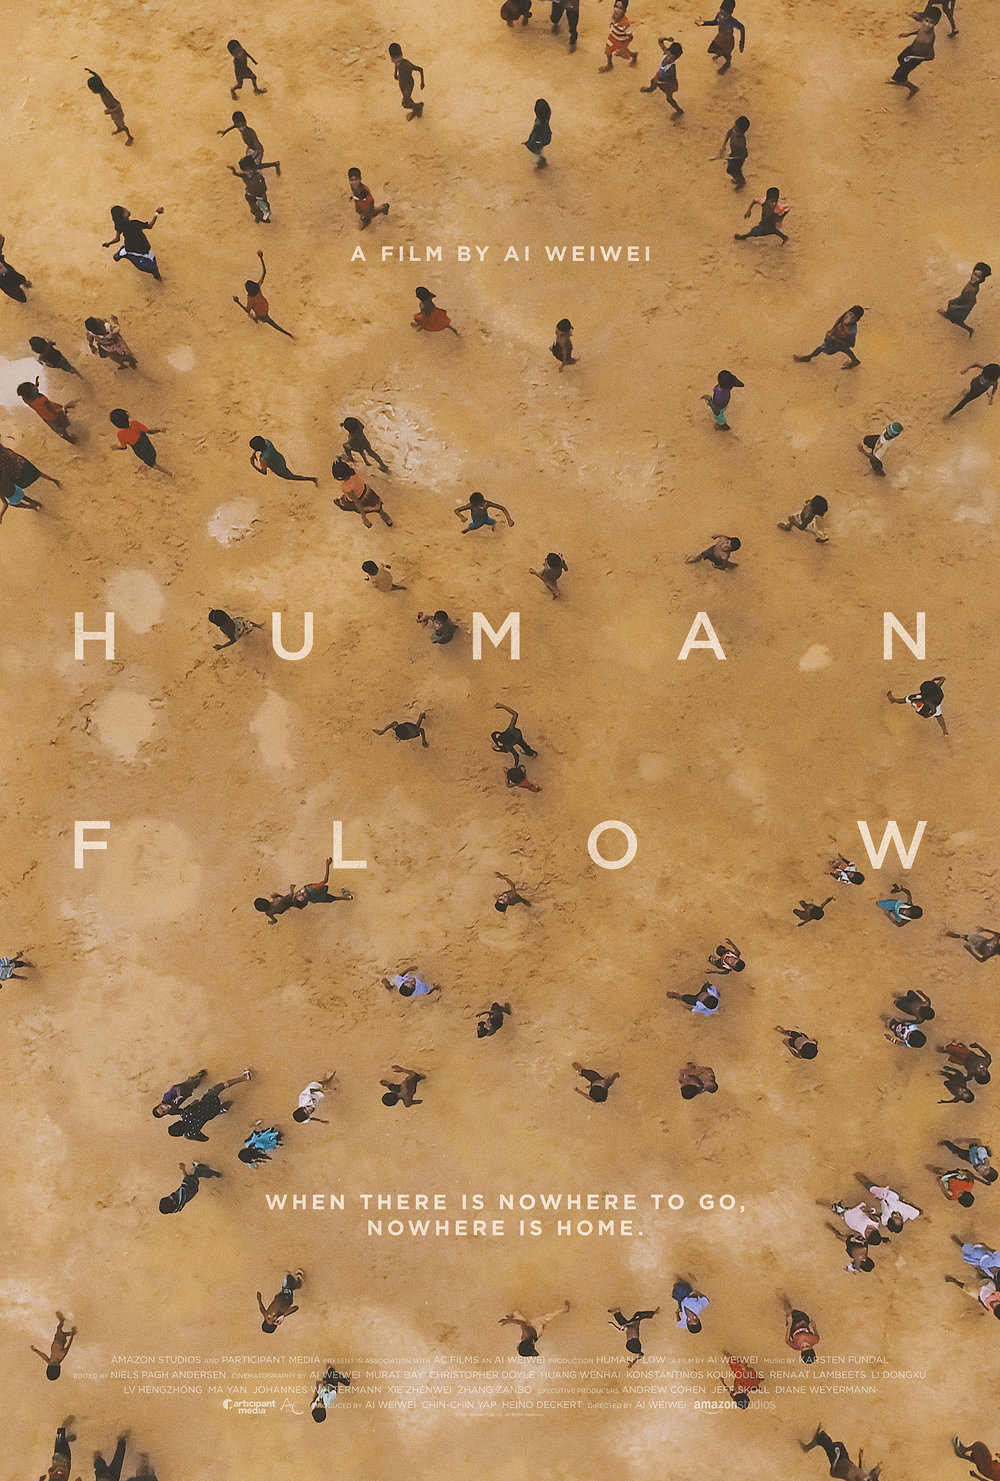 Human Flow - Featuring drone photography and twenty-three countries, Ai Weiwei demonstrates the scale of forced migration worldwide. In a similar way to Fire At Sea, the camera does not turn away from those on the move. No solutions are suggested and instead the documentary focuses in on the worldwide scale of displaced people. Bethany called it